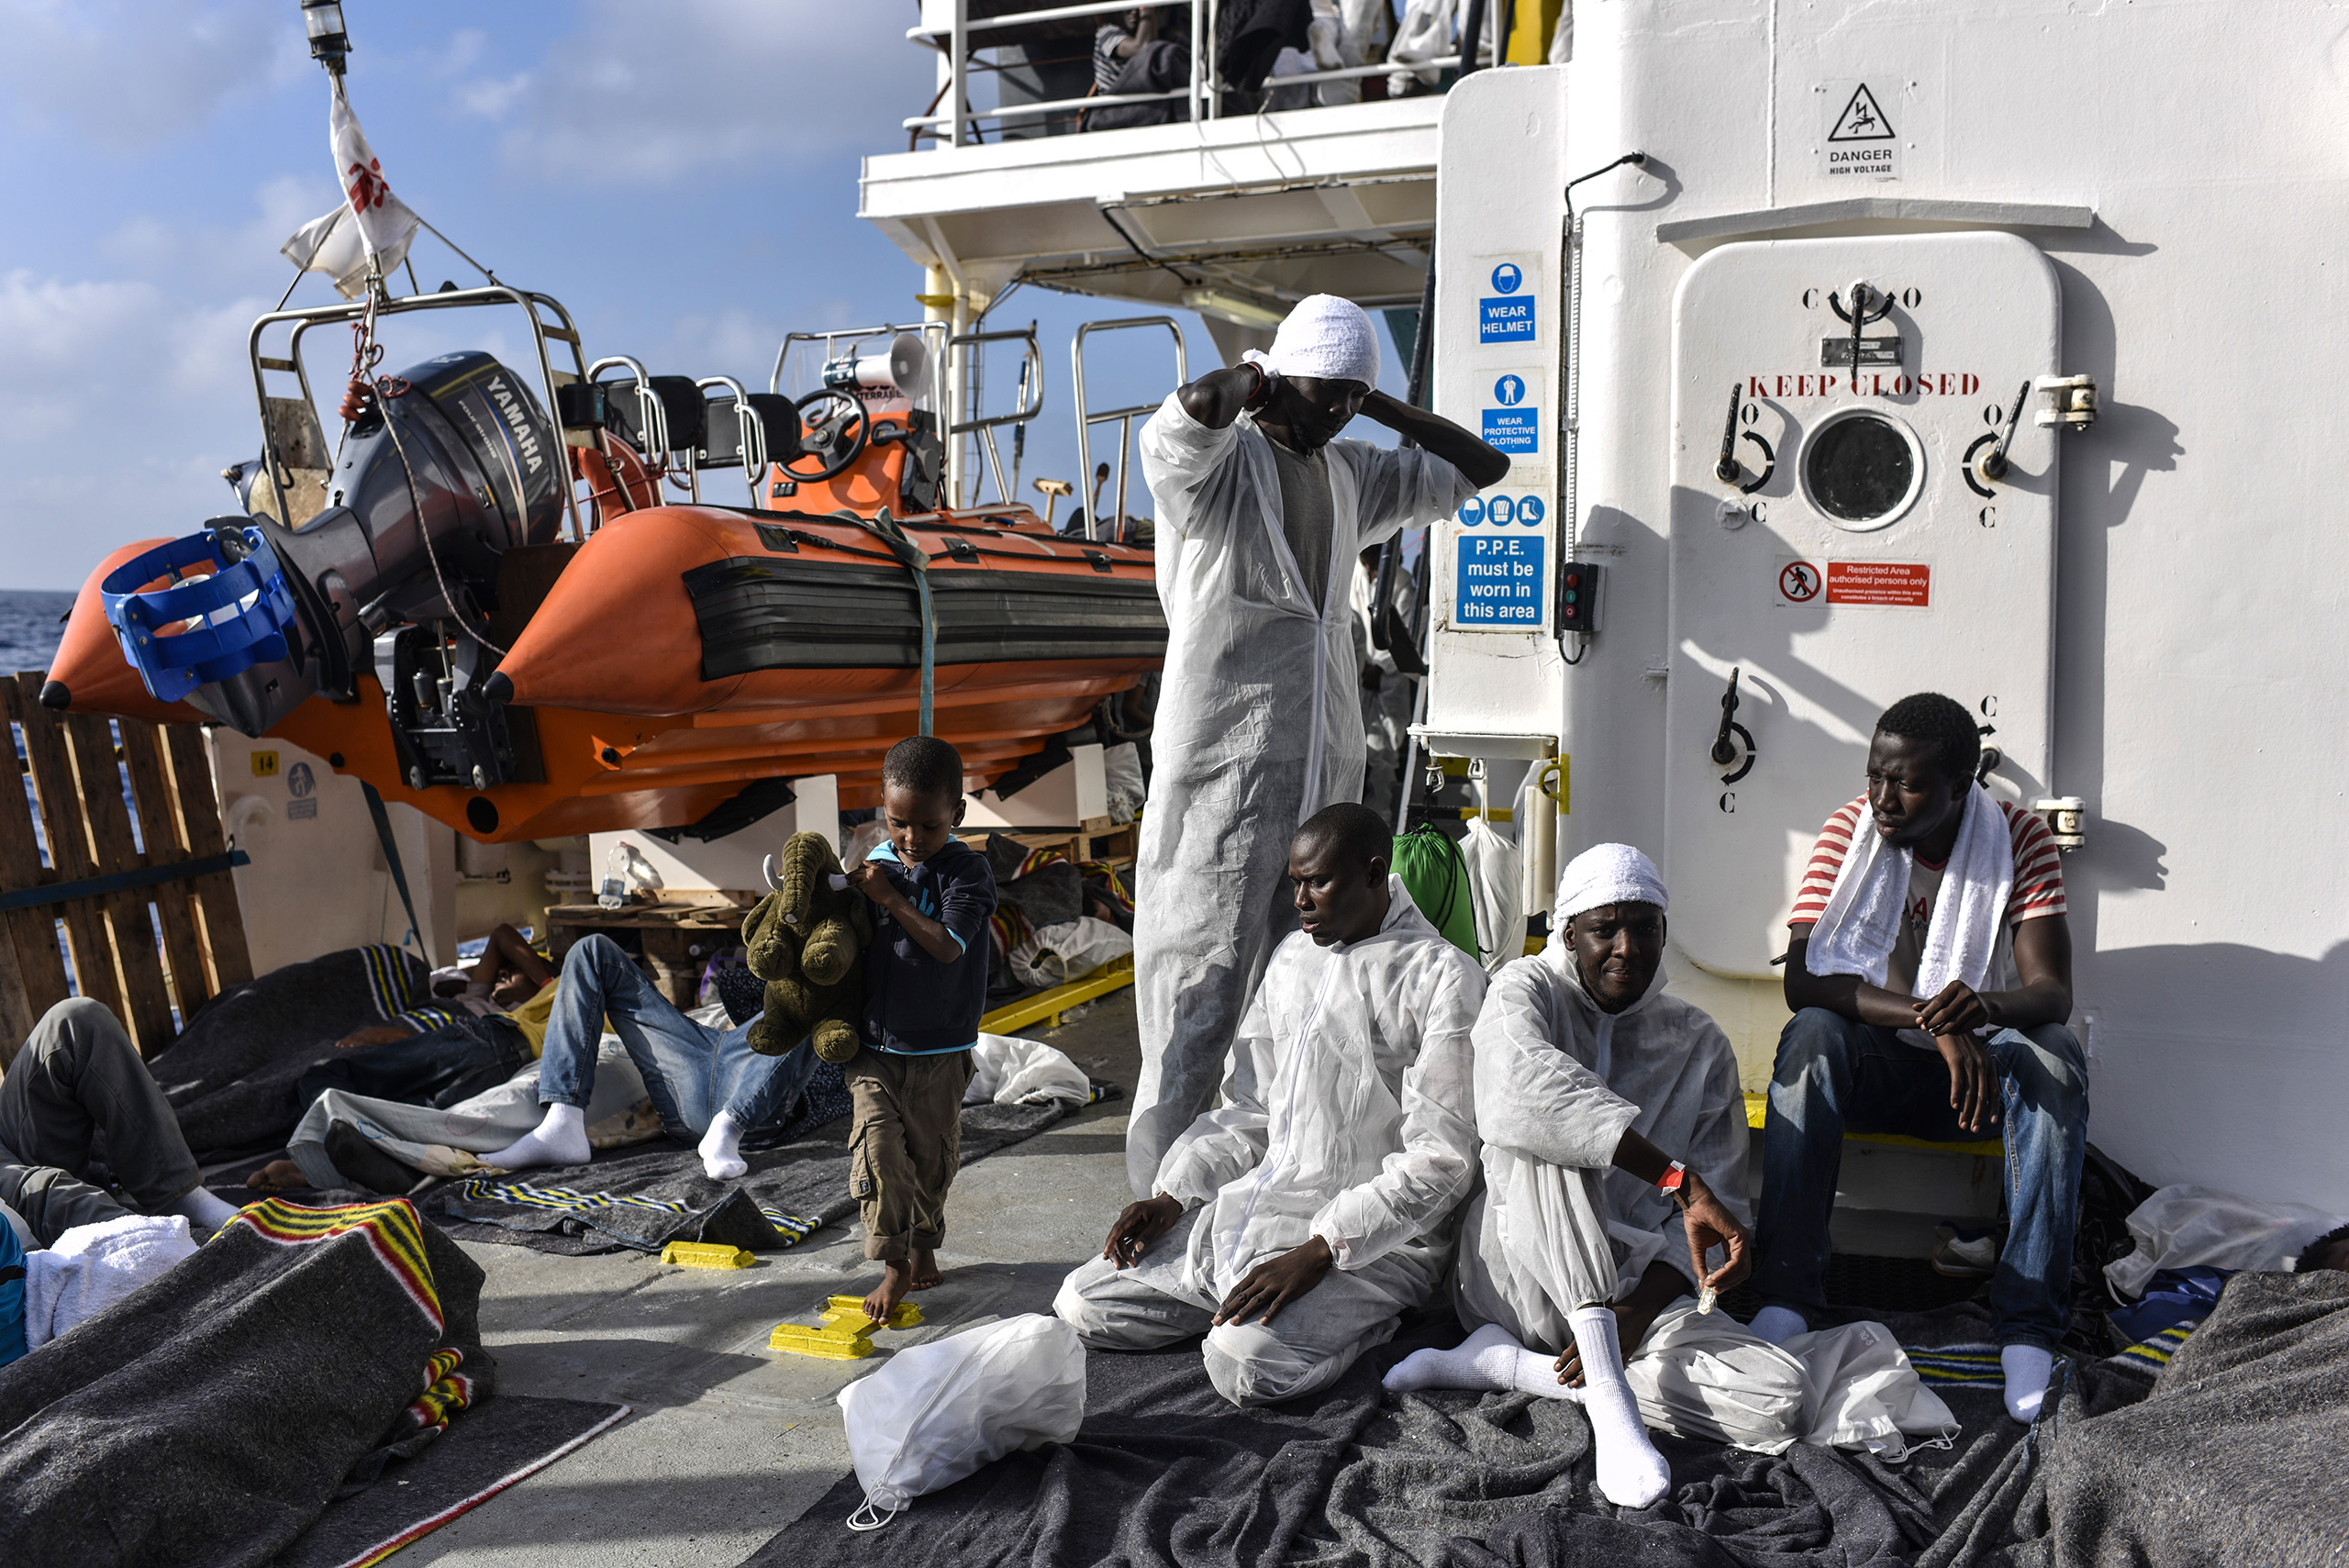 Muslim migrants preparing for prayer on the deck of the MV Aquarius ship, Aug. 22, 2016.